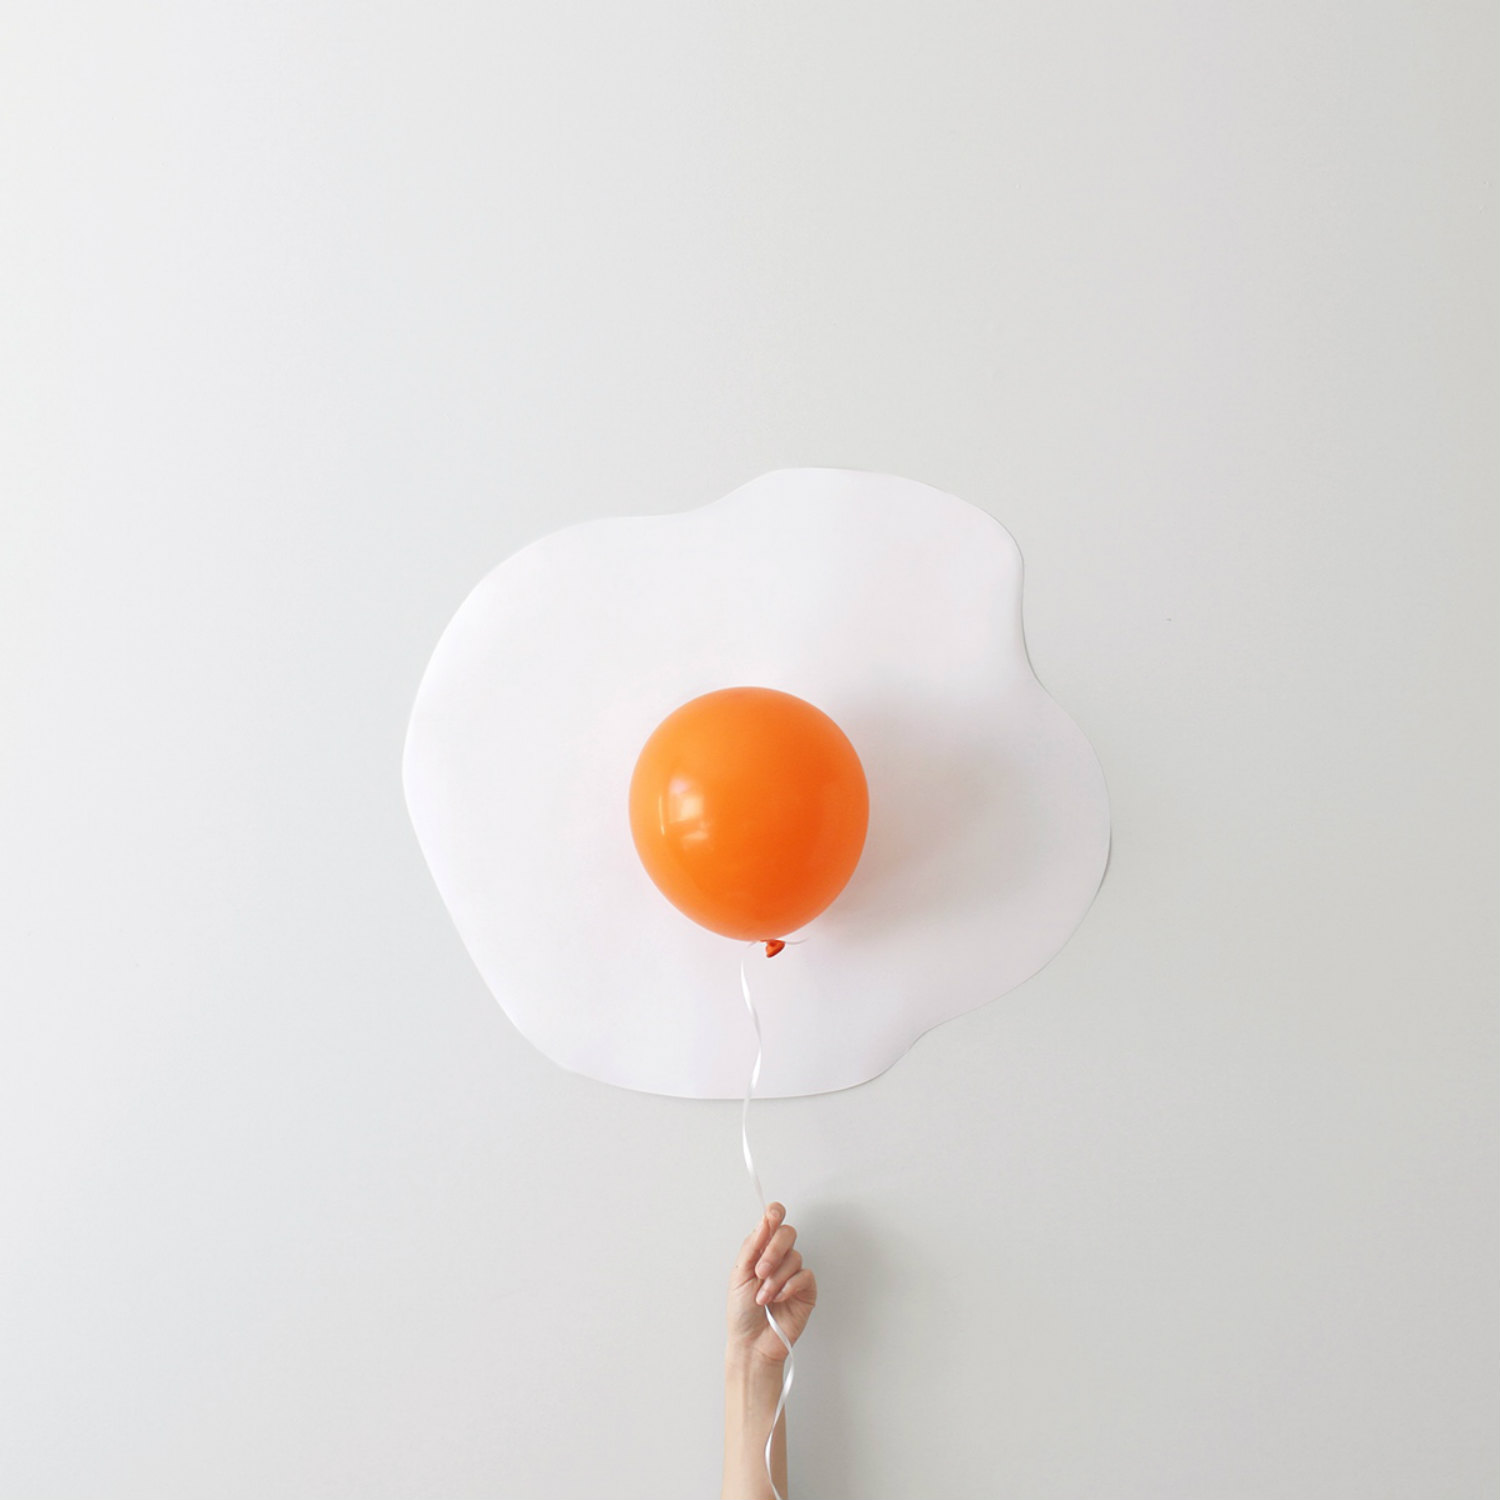 Peechaya Burroughs photography graphic design minimalist objects colour balloon egg